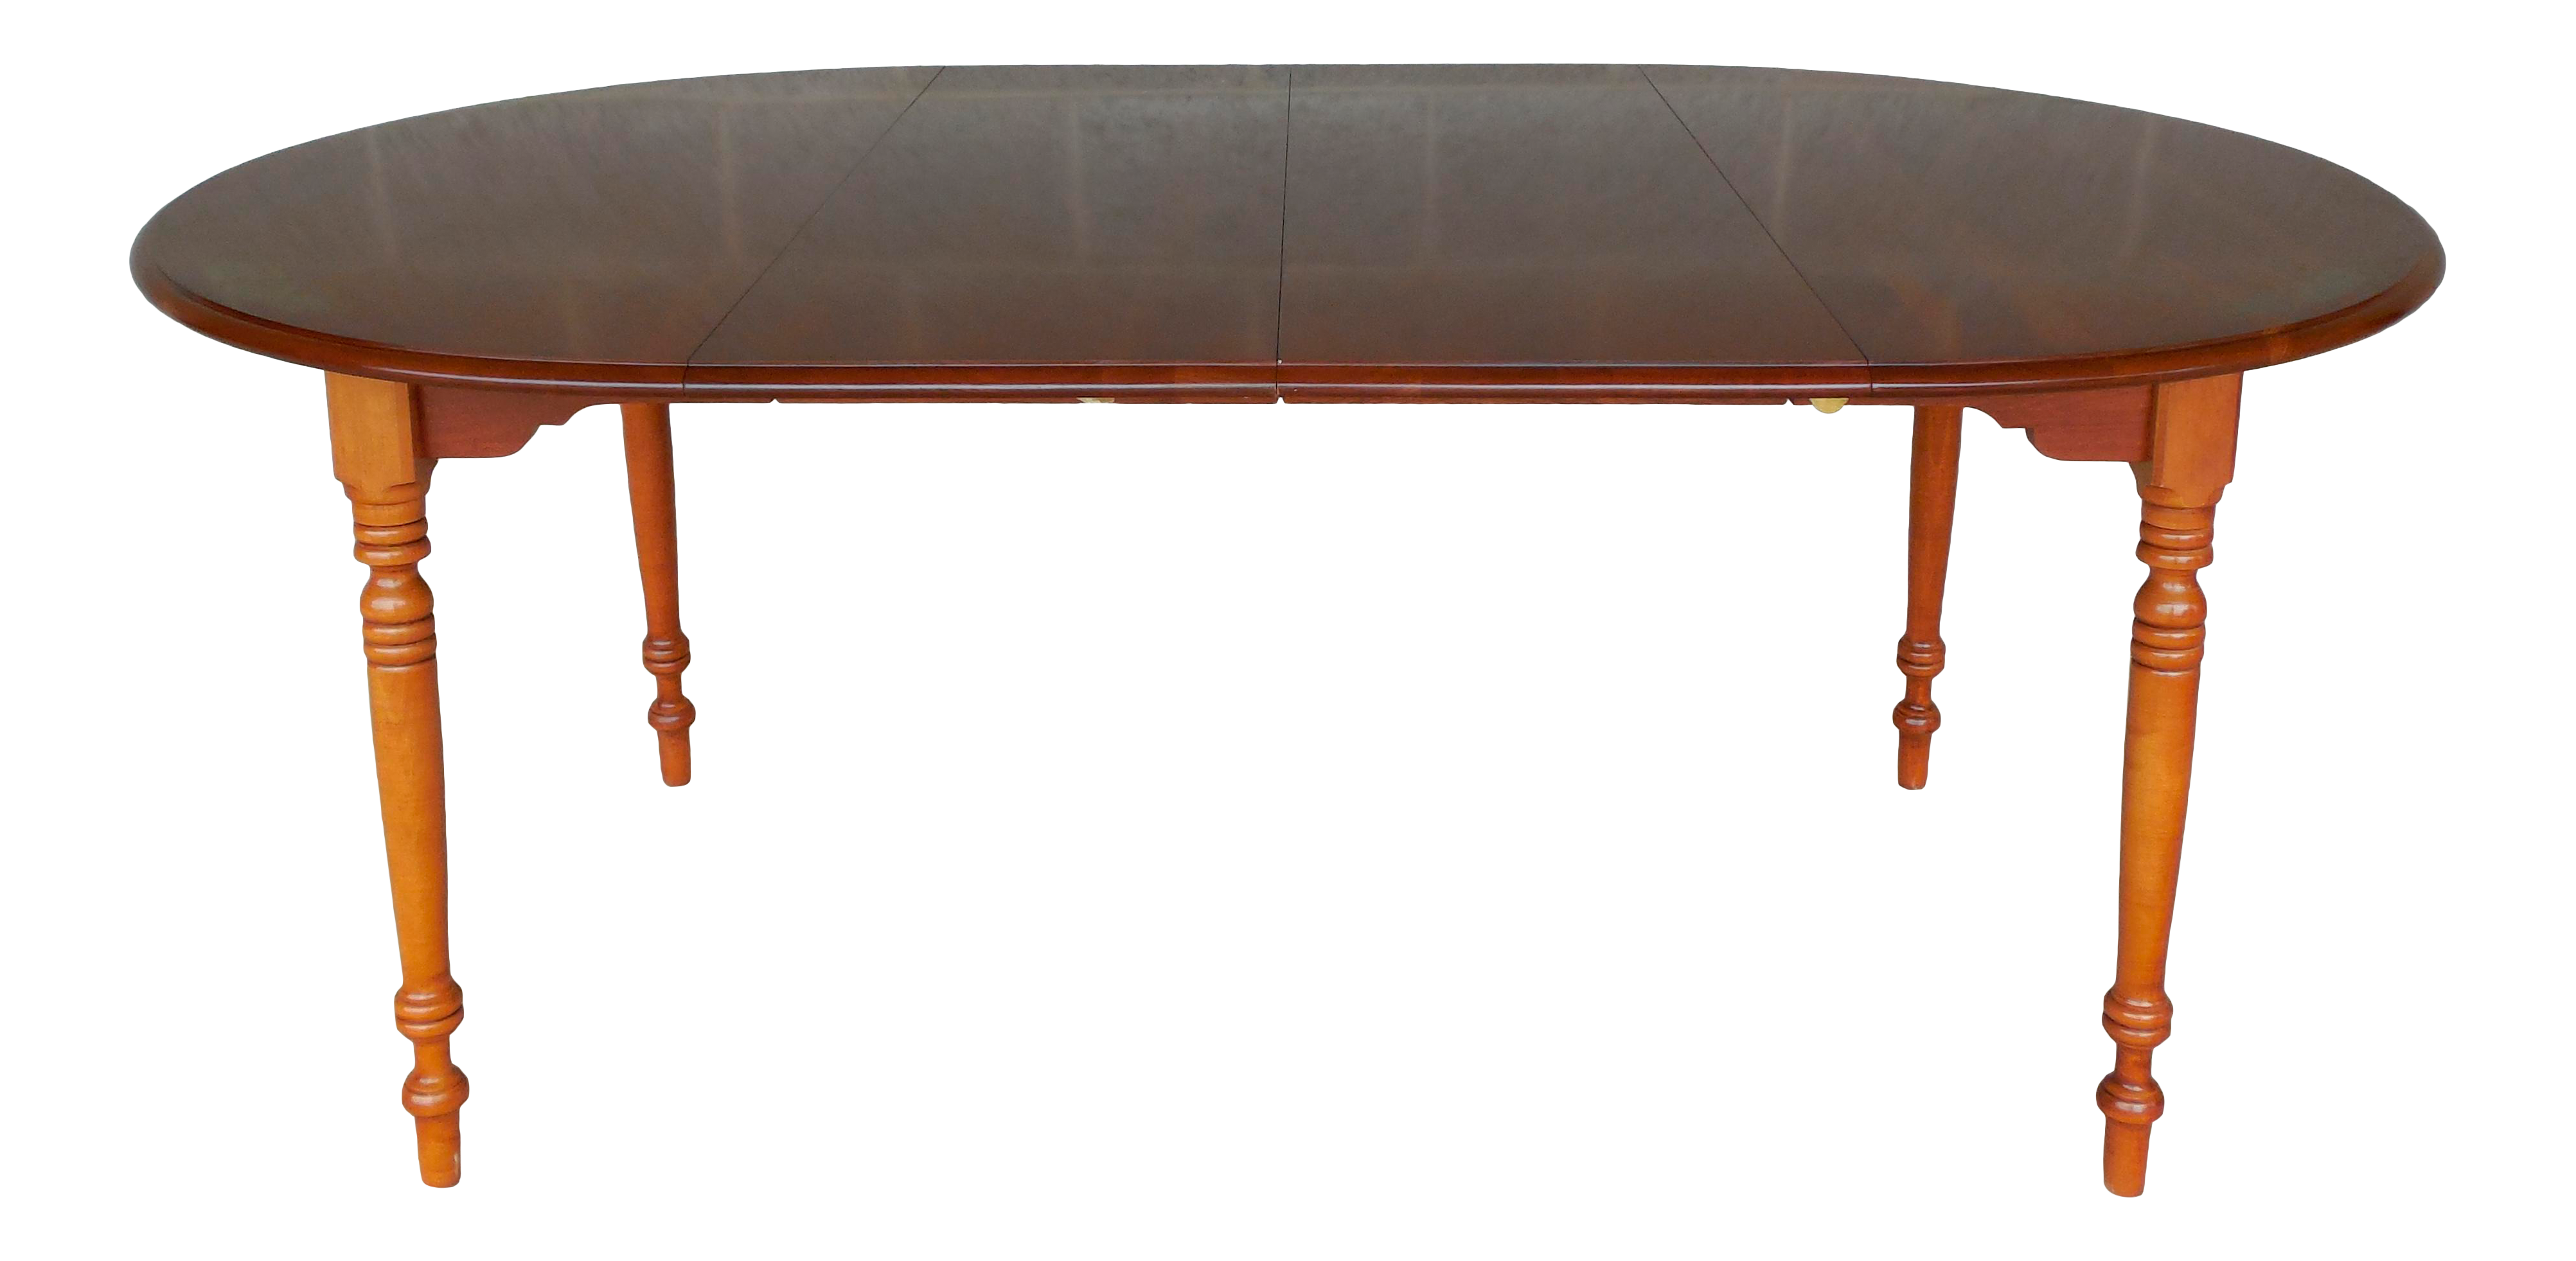 gently used hitchcock furniture - save up to 60% at chairish